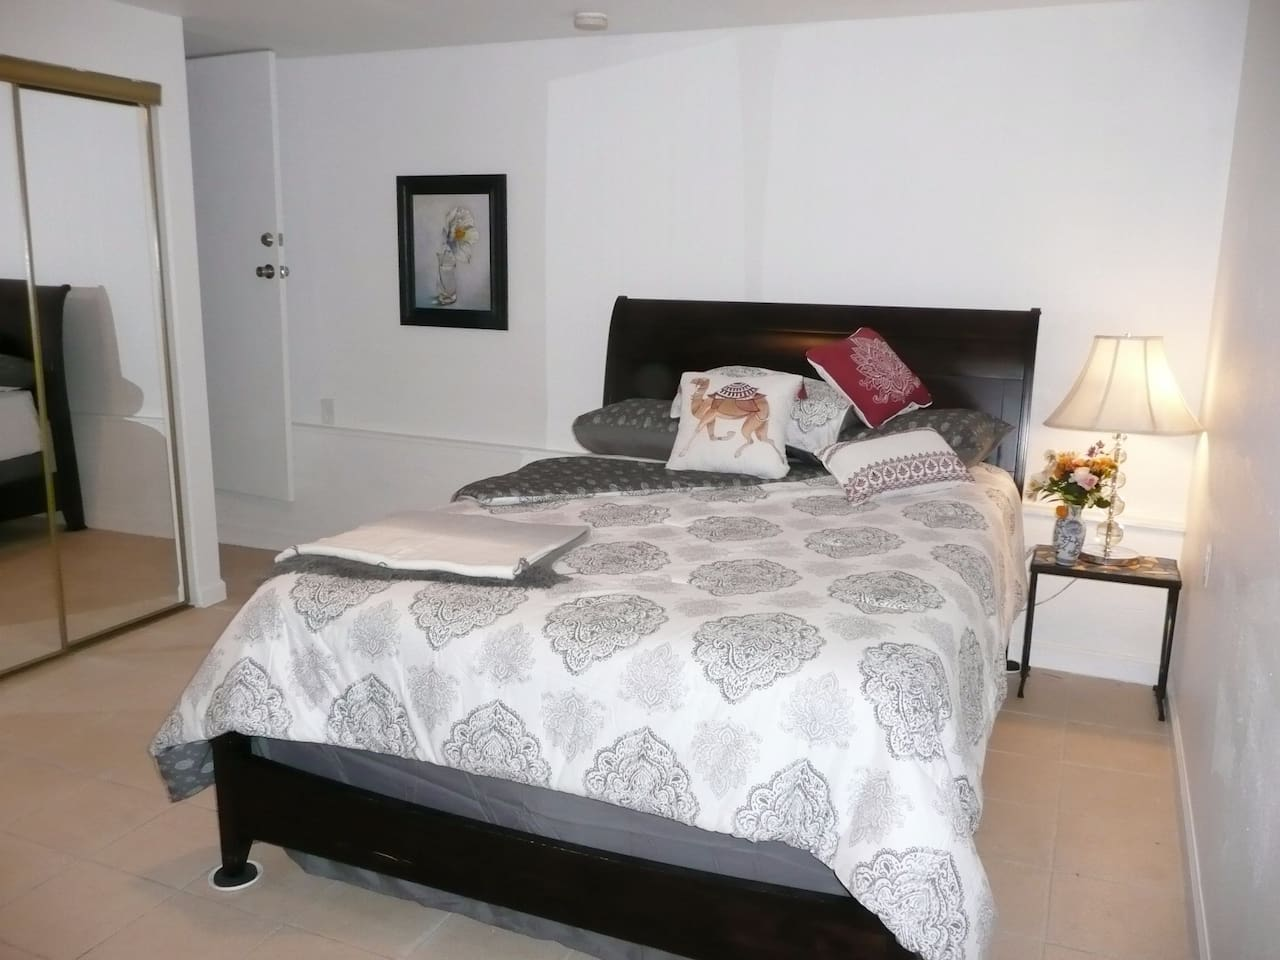 Queen sized sleigh bed